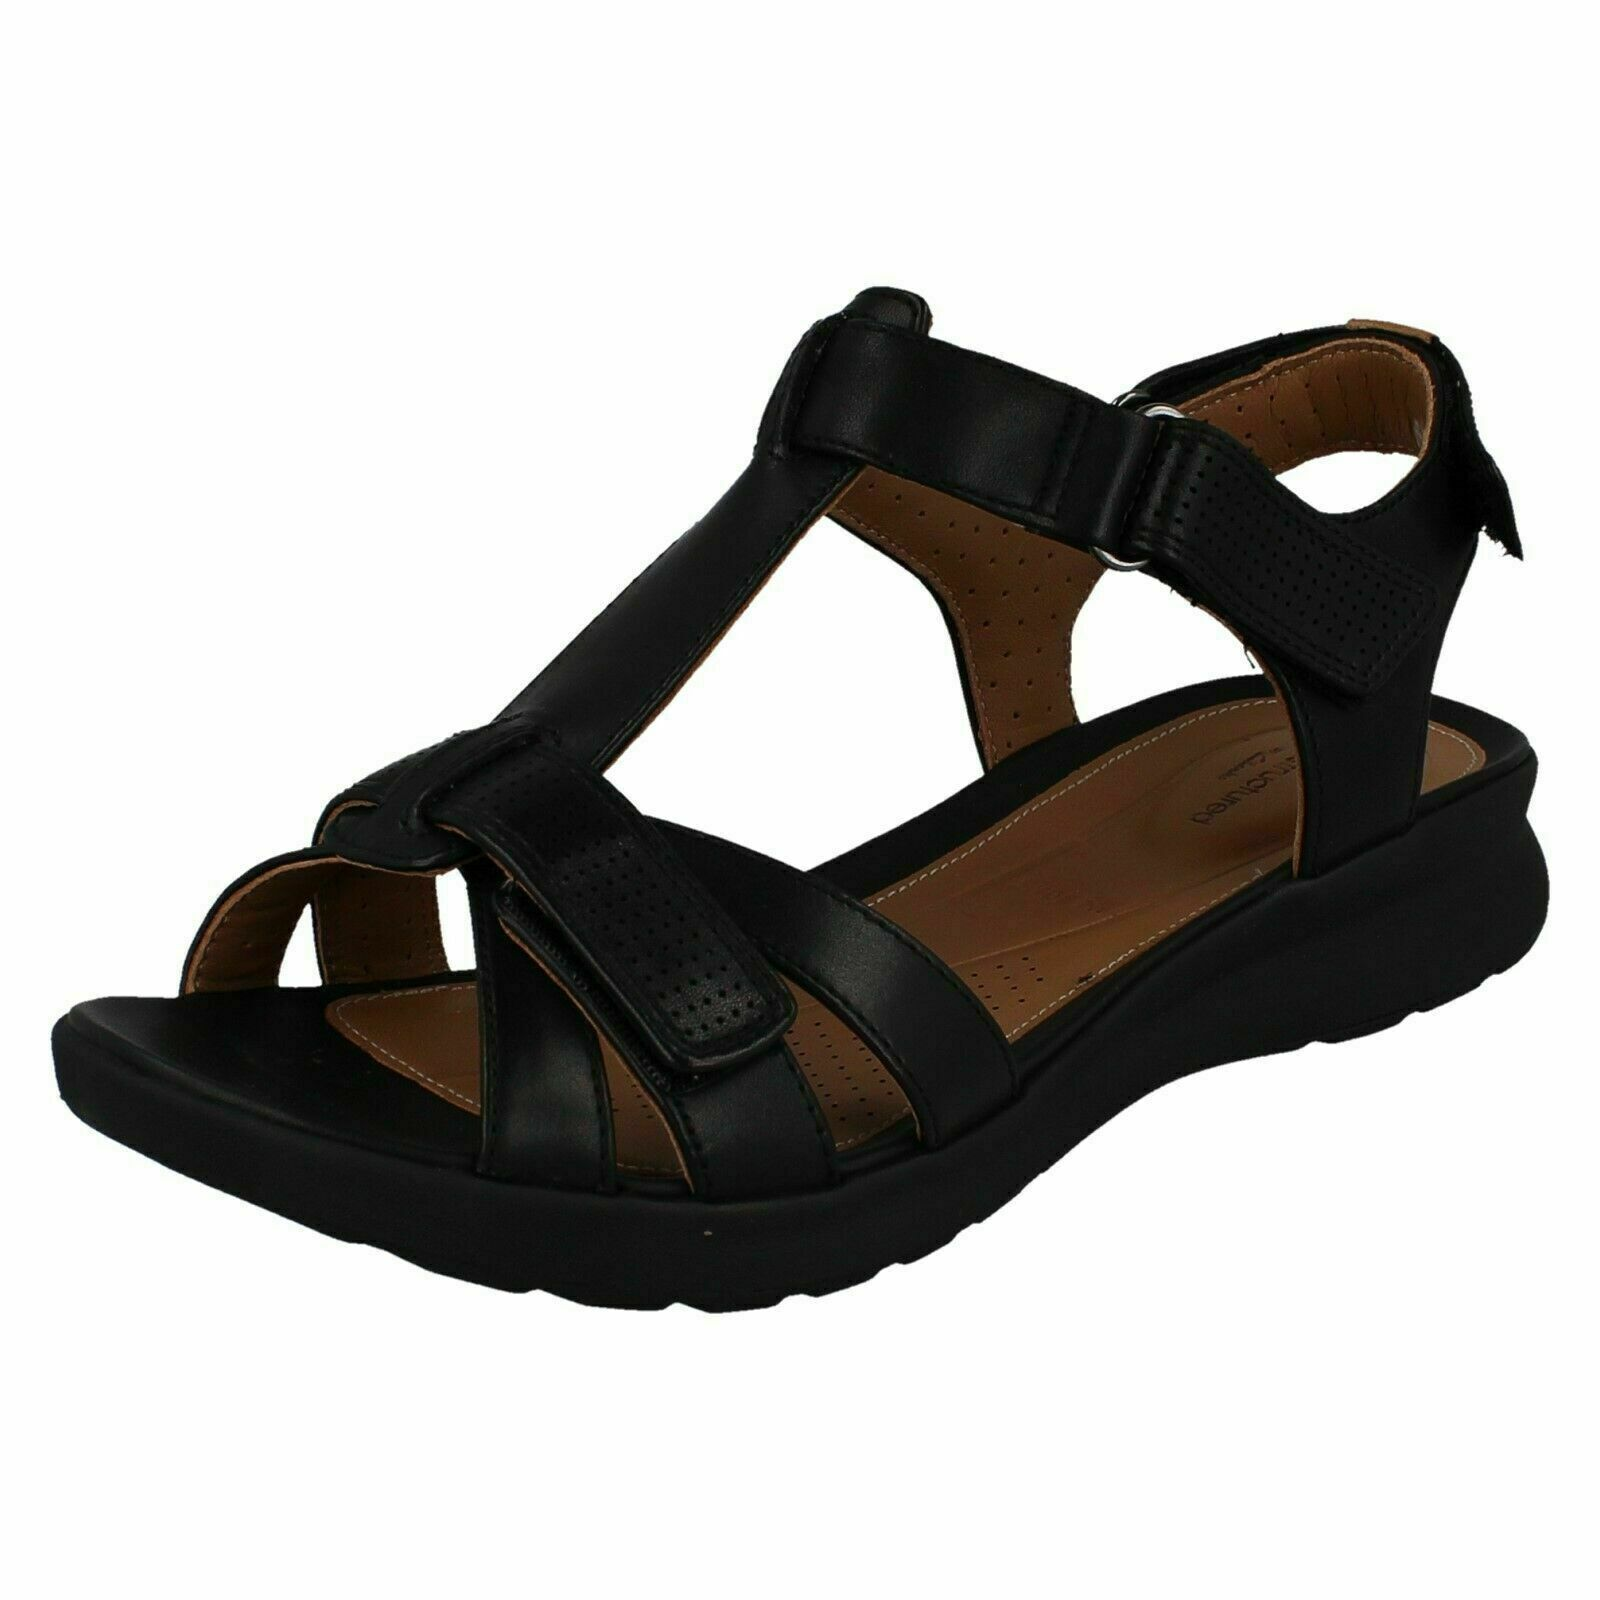 Clarks Womens Un Adorn Vibe Black Leather Touch Fasten T Bar Ankle Strap Sandals